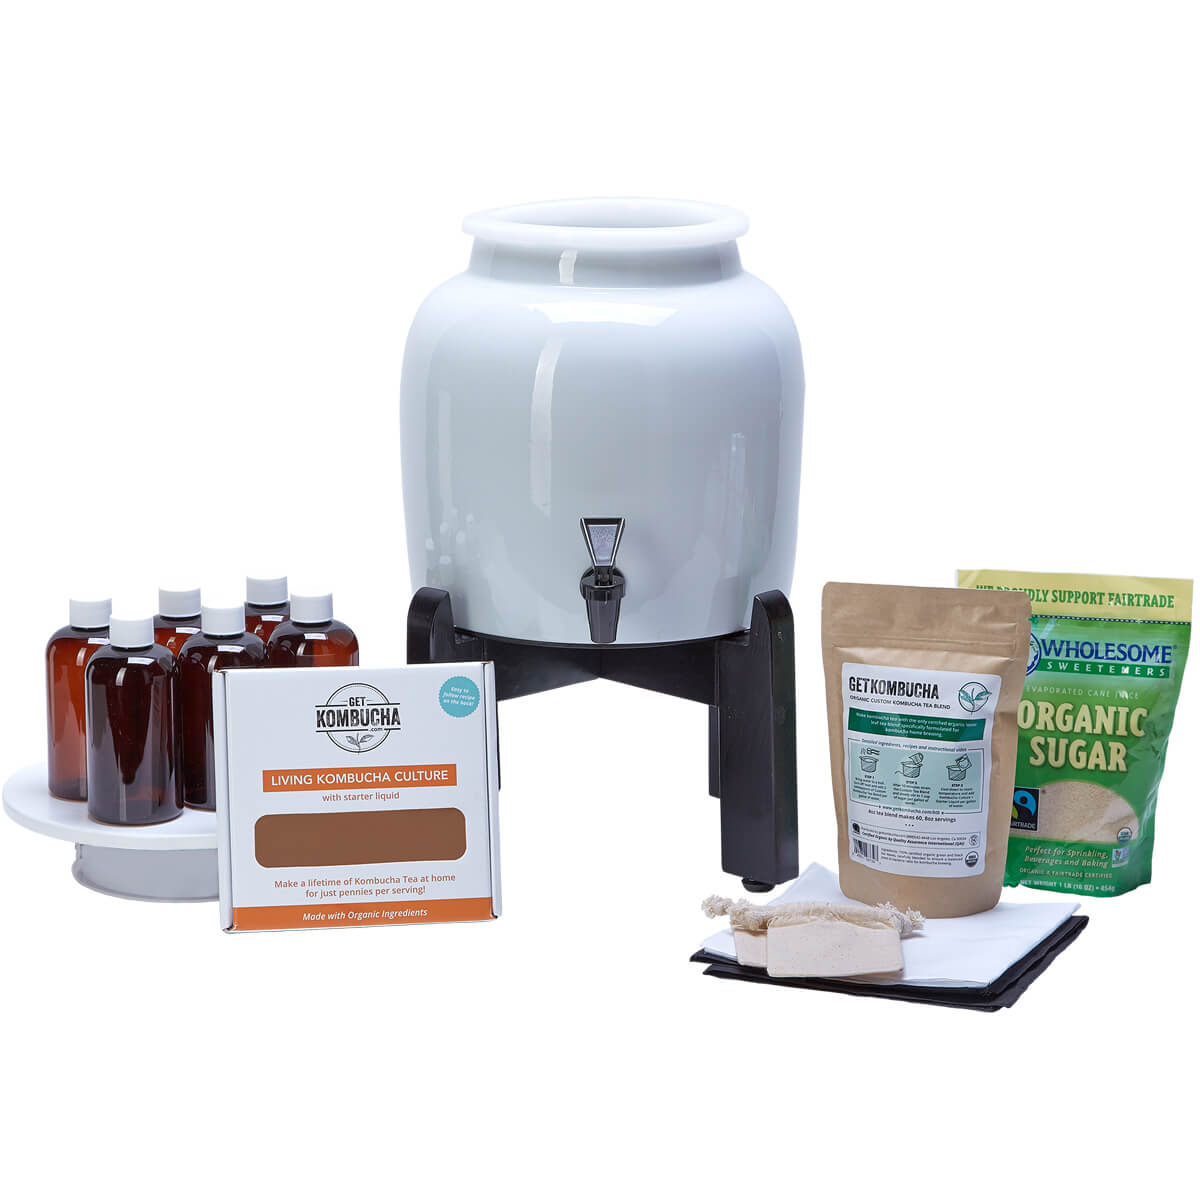 Kombucha Continuous Brewing Kit BASIC